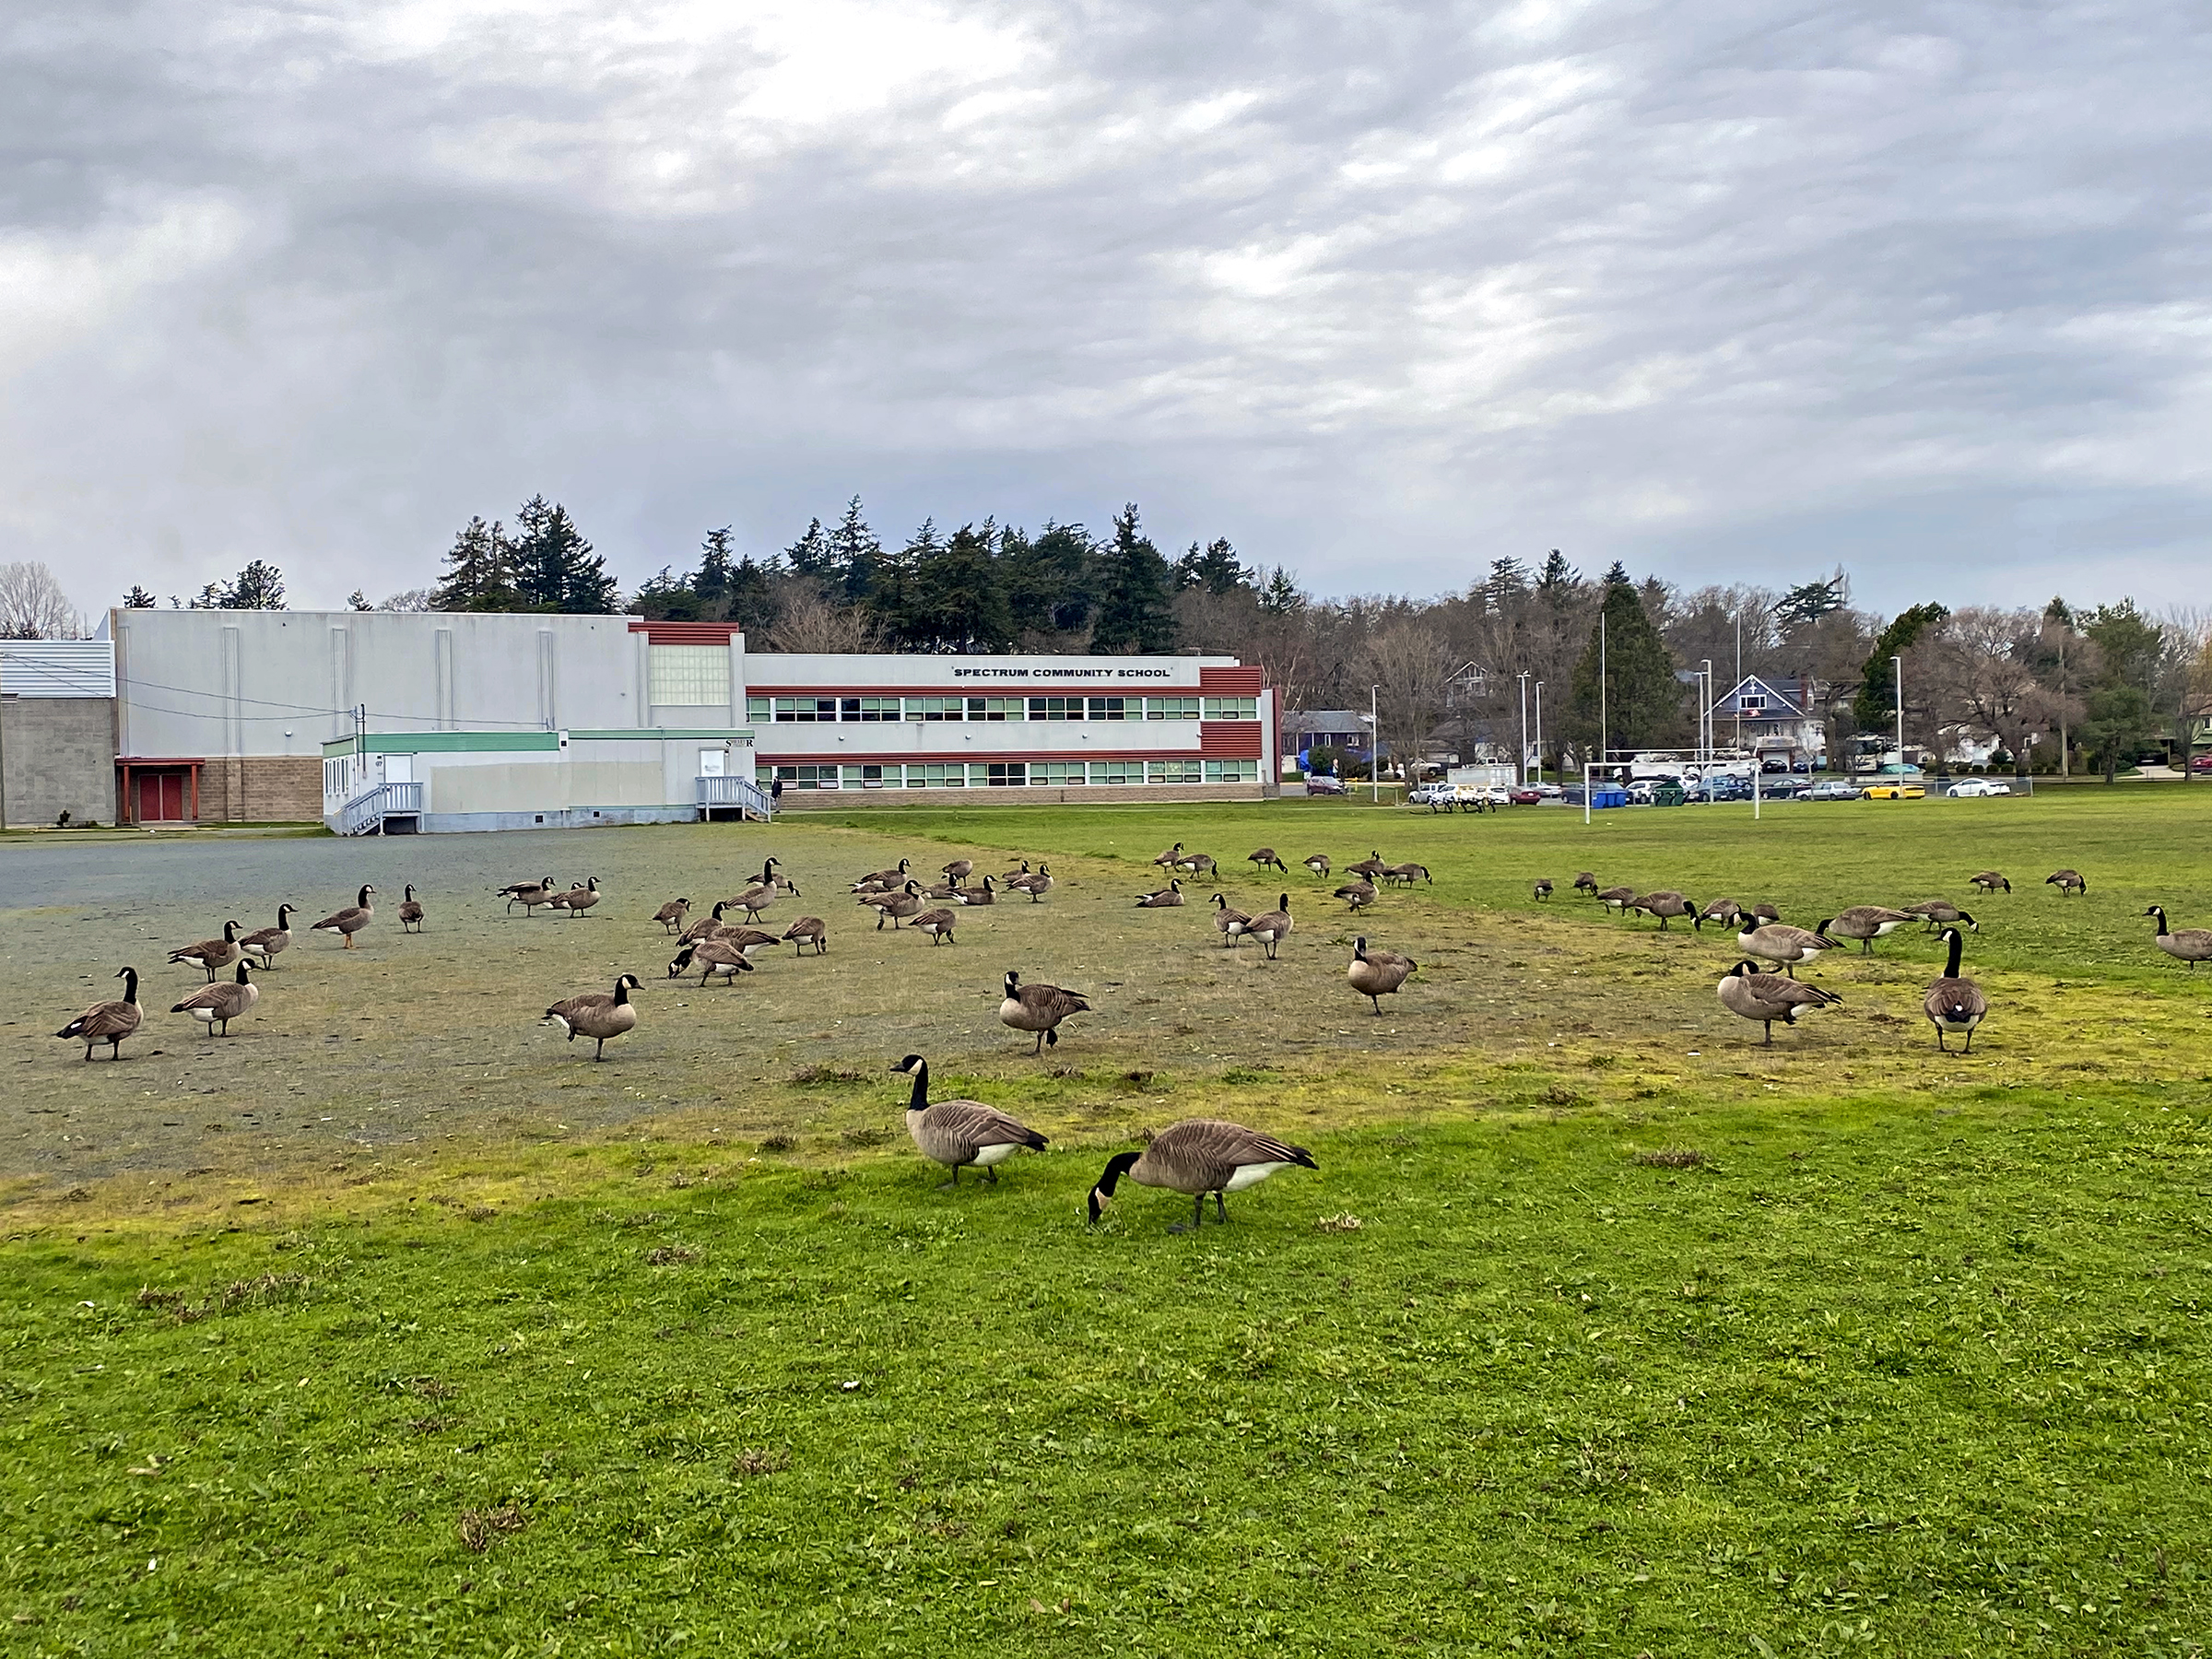 On an average day this is the look throughout the day at Spectrum Community School. The Star Project is hoping to turn this home for transient geese into a community and recreation space. Photo by Carson Papke ISN